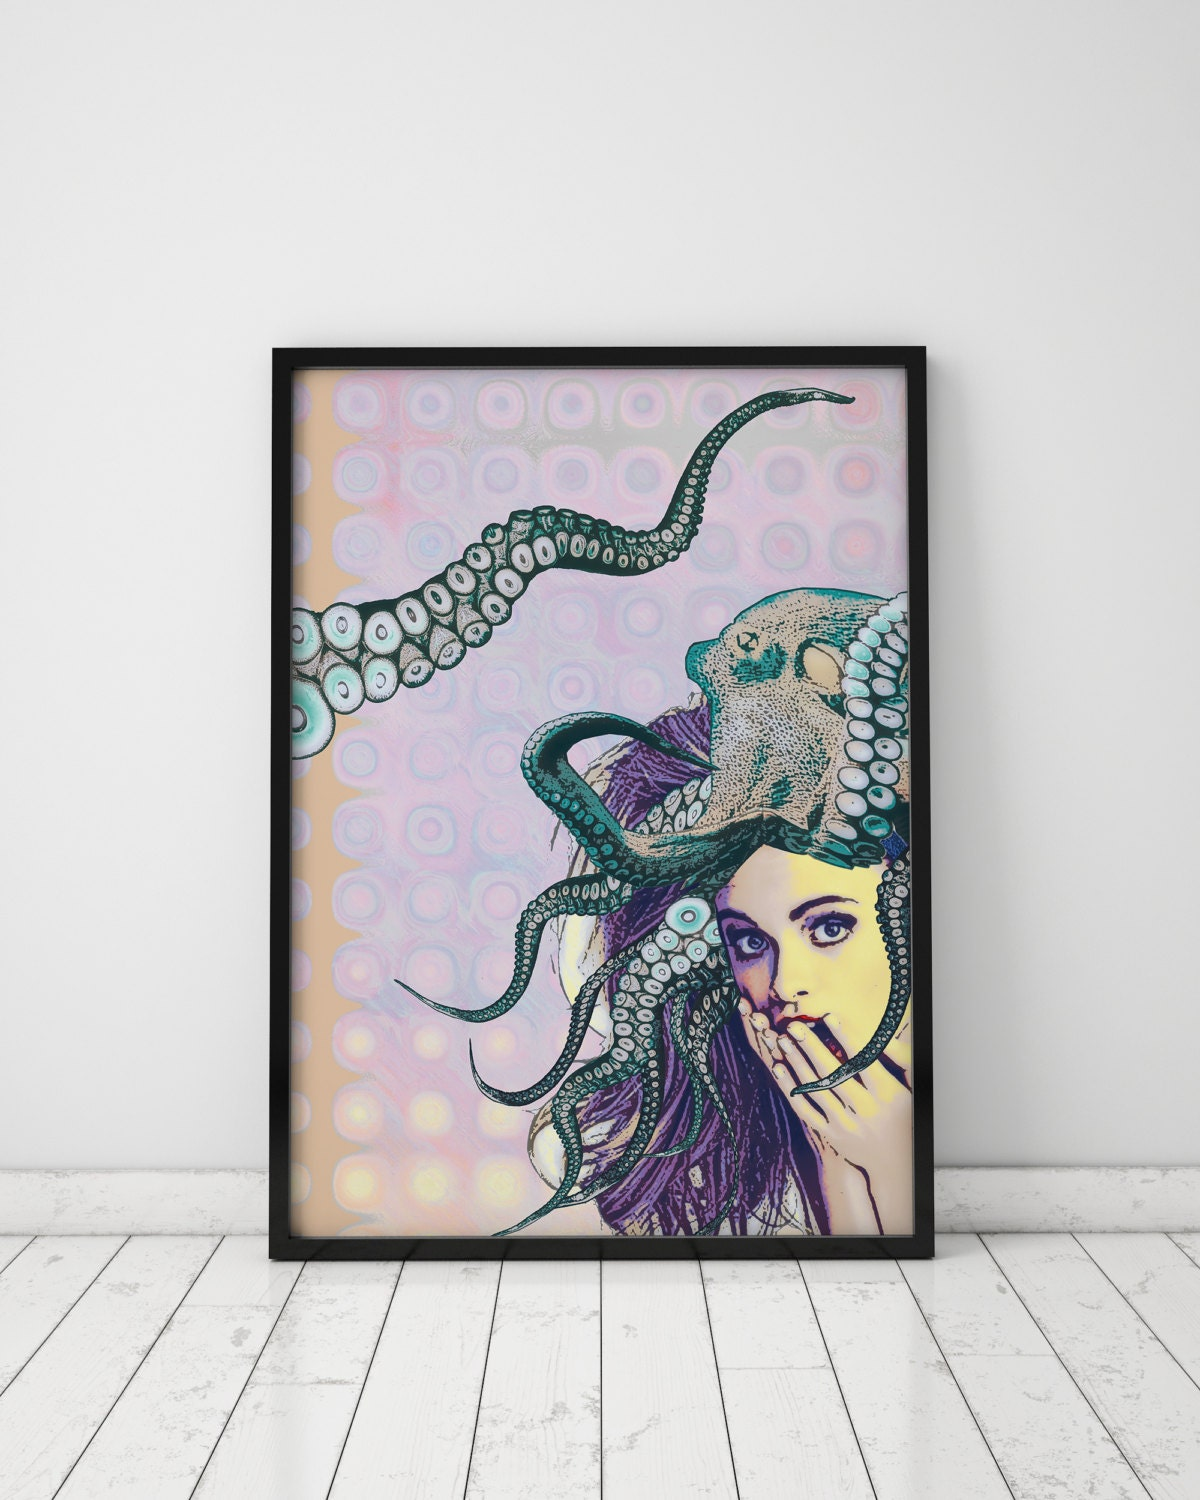 Teenage bedroom wall art - Poster Pop Art Poster Wall Art Prints Teen Bedroom Prints Wall Print Teen Room Decor Pin Up Girl Pastel Print Teenage Girl Pop Art Print